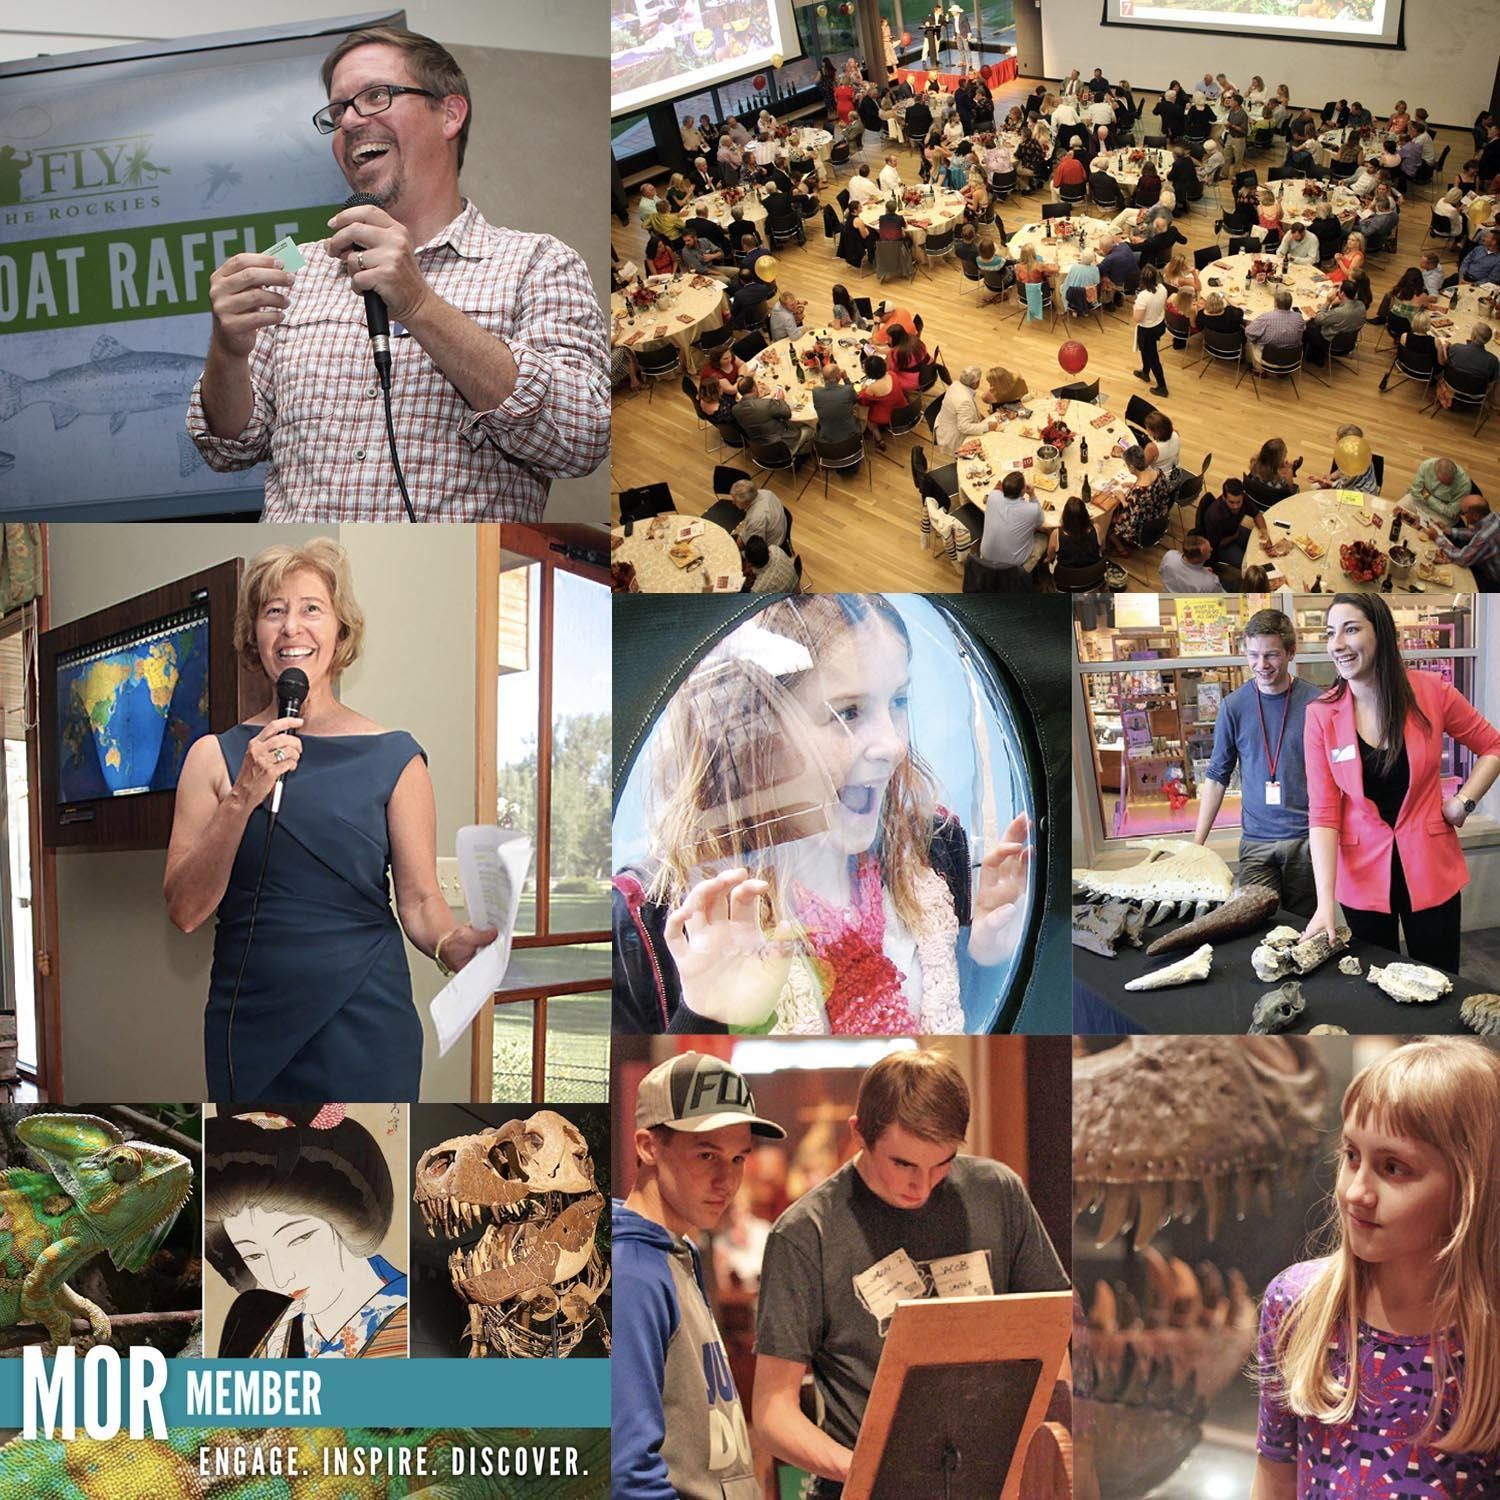 Photo collage of staff speaking, looking down onto numerous benefit event tables, children enjoying the museum, staff showing a fossil, and past membership email photo collage.